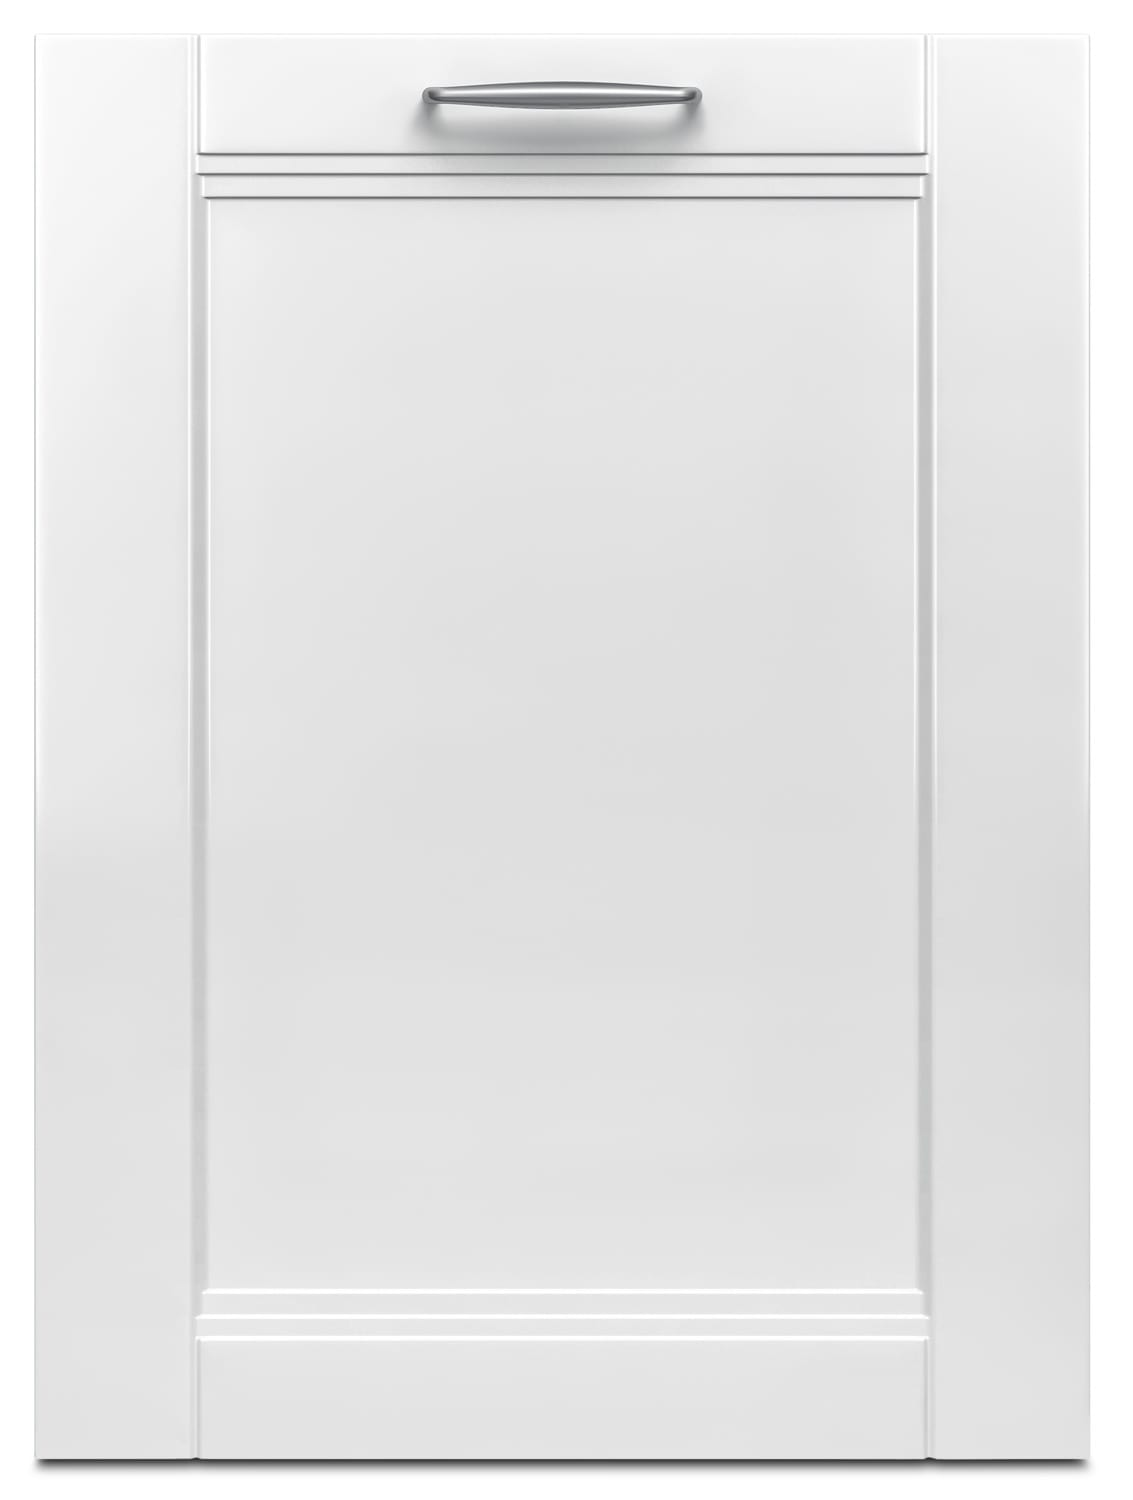 Bosch 300 Series Panel-Ready Dishwasher – SHVM63W53N